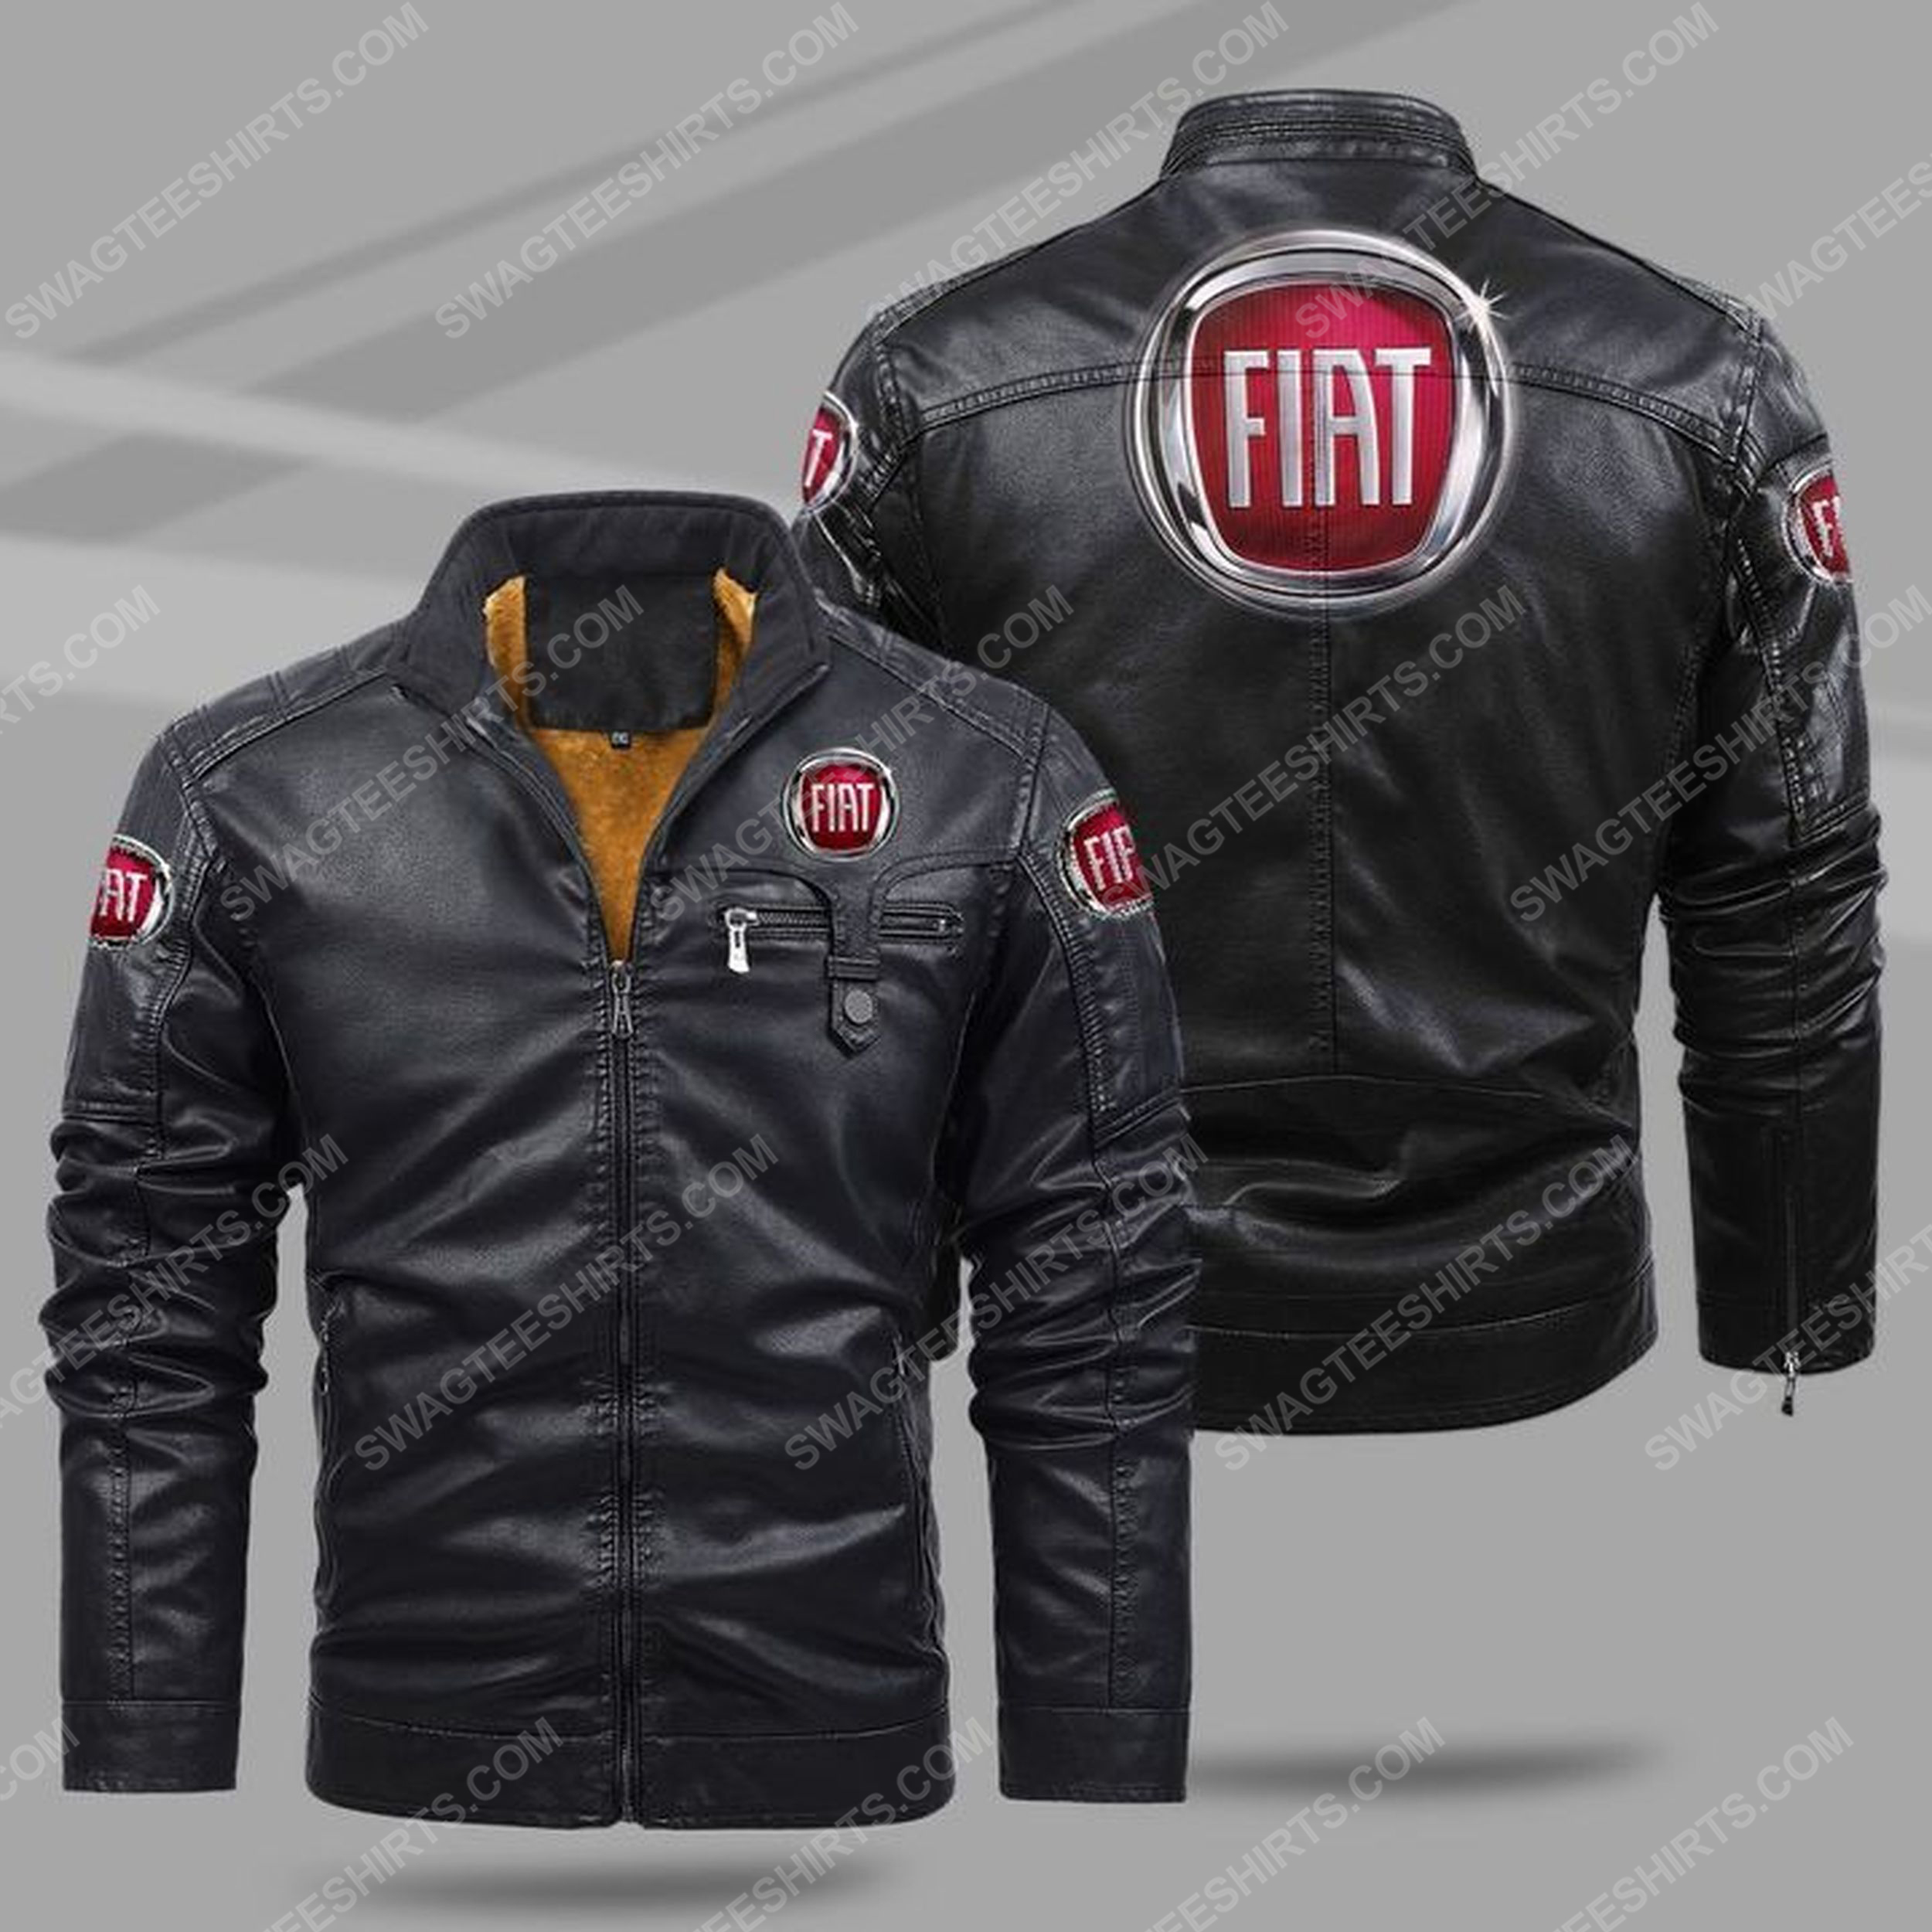 The fiat car all over print fleece leather jacket - black 1